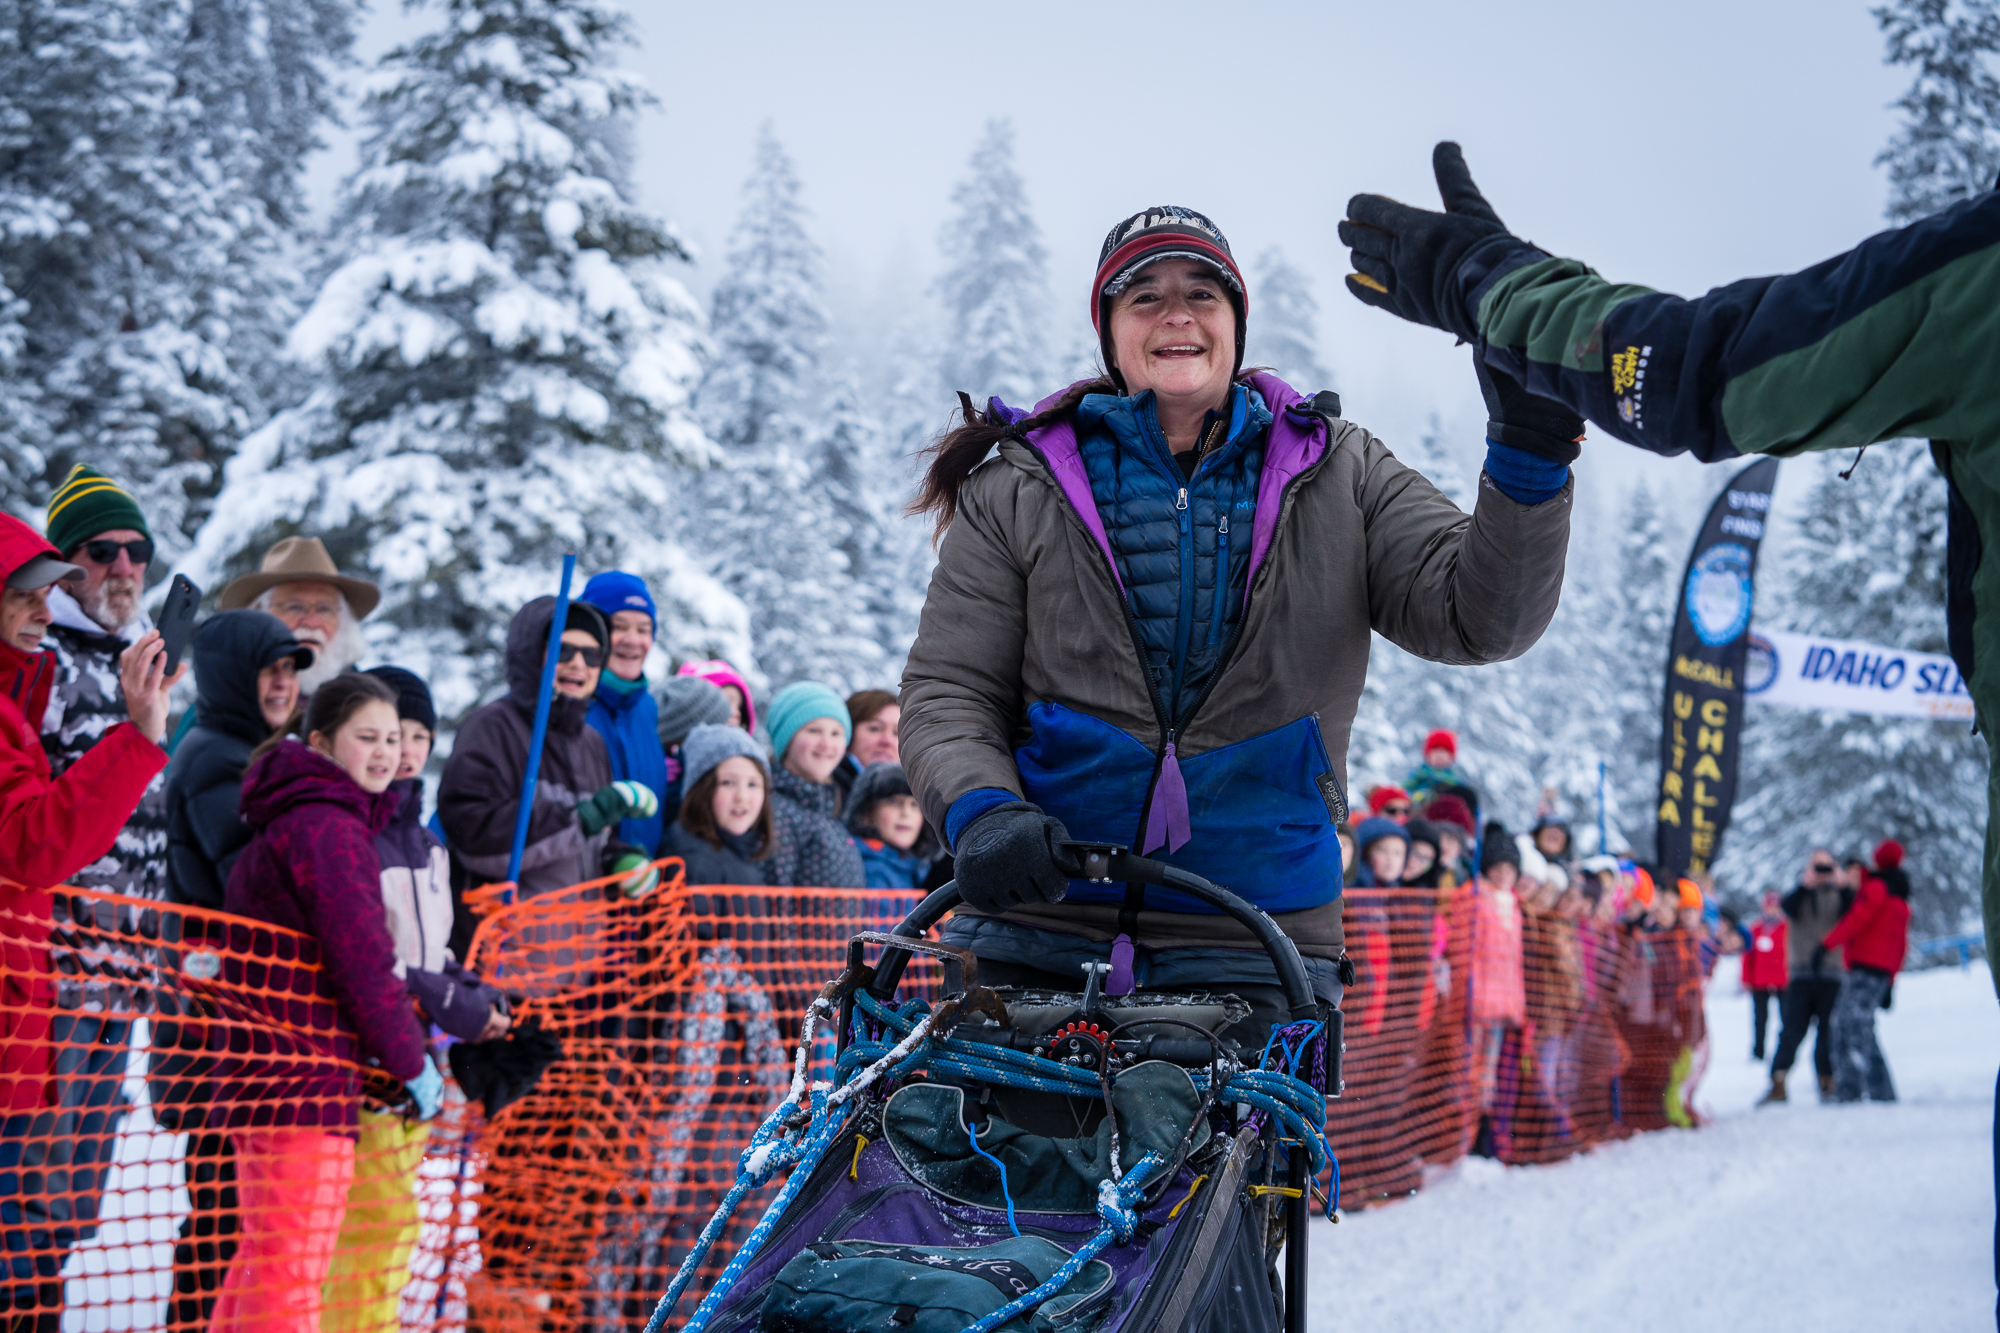 Jessie Royer at the start of the 300 mile ISDC